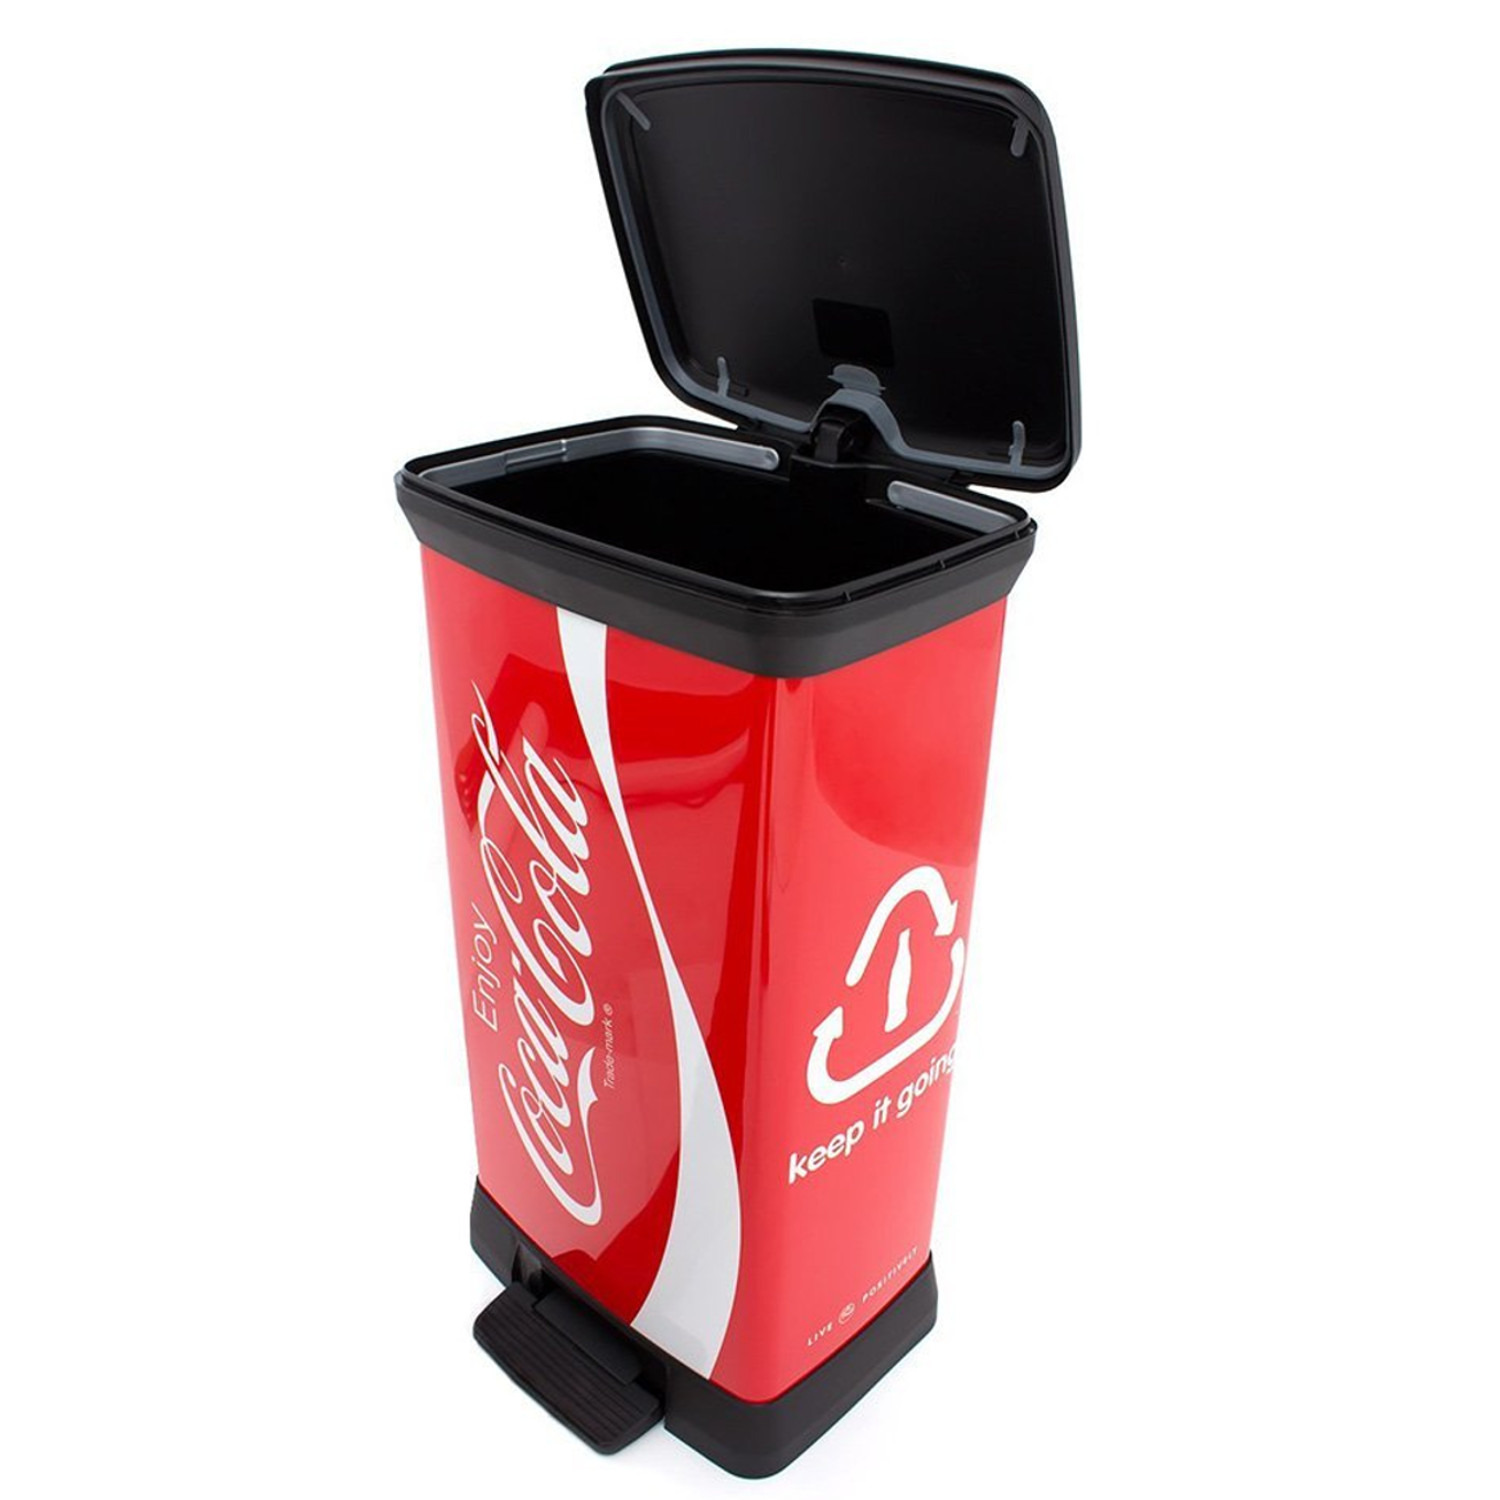 coca cola abfalleimer 50 liter curver eimer m lleimer 50. Black Bedroom Furniture Sets. Home Design Ideas